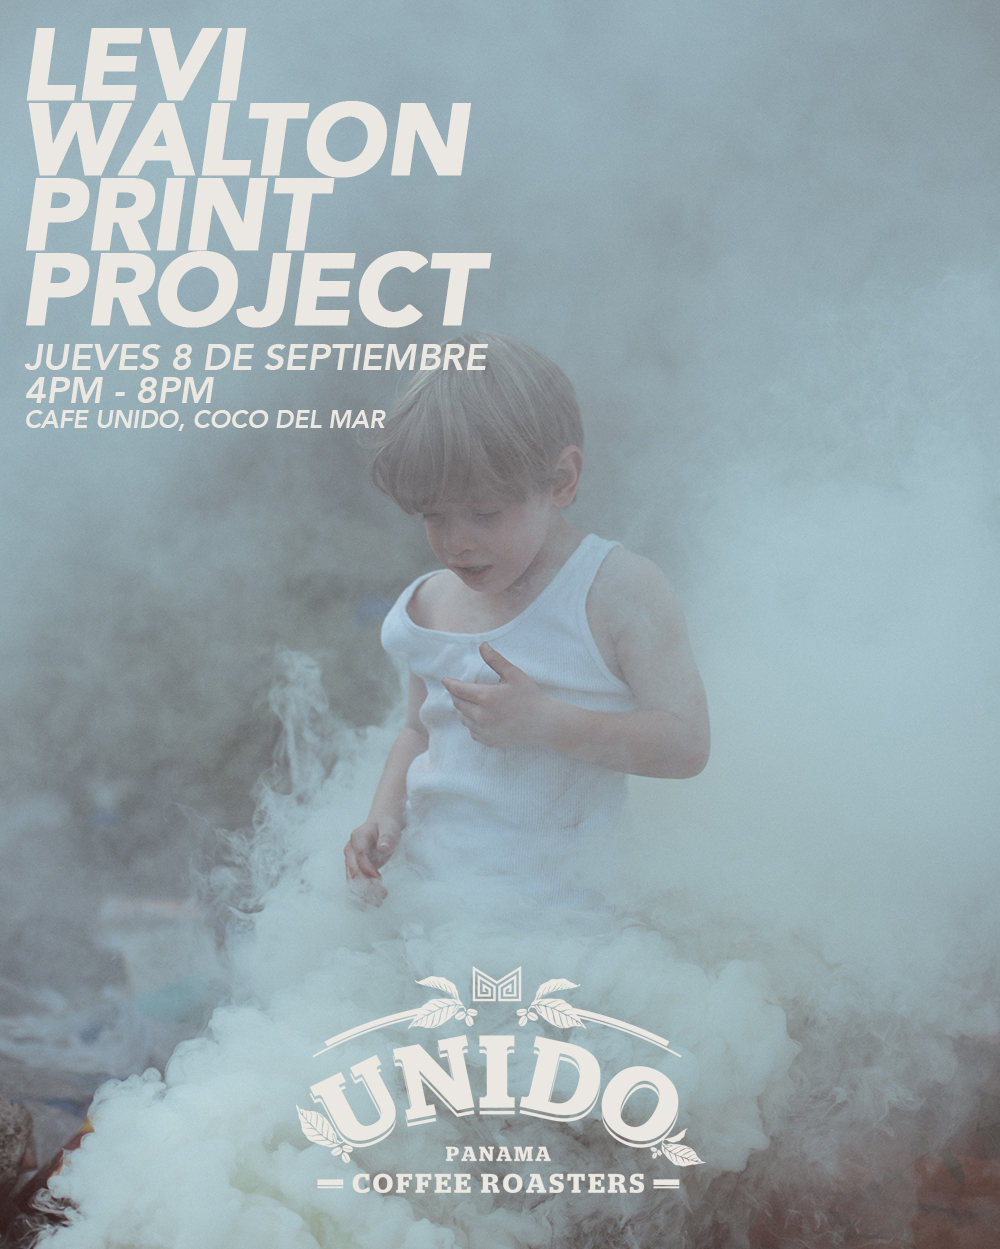 Levi Walton Print Project: Print signing event held in Panama City, Panama